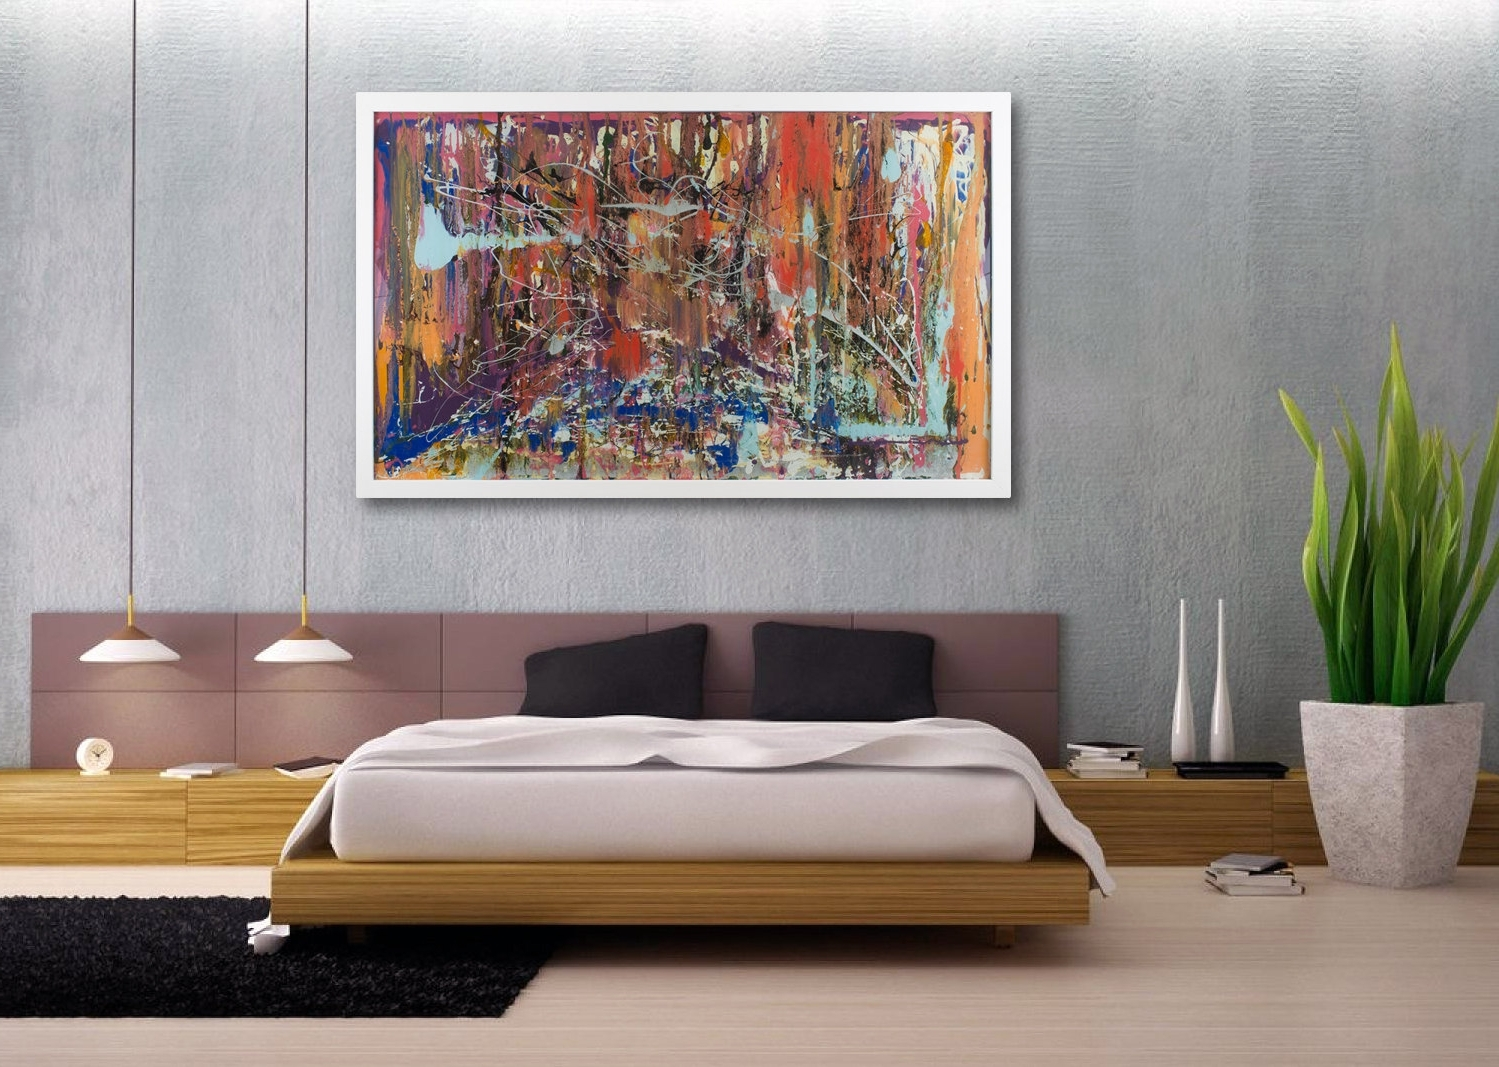 Expensive Large Canvas Wall Art Bedroom — Joanne Russo Homesjoanne With Best And Newest Etsy Wall Accents (View 7 of 15)